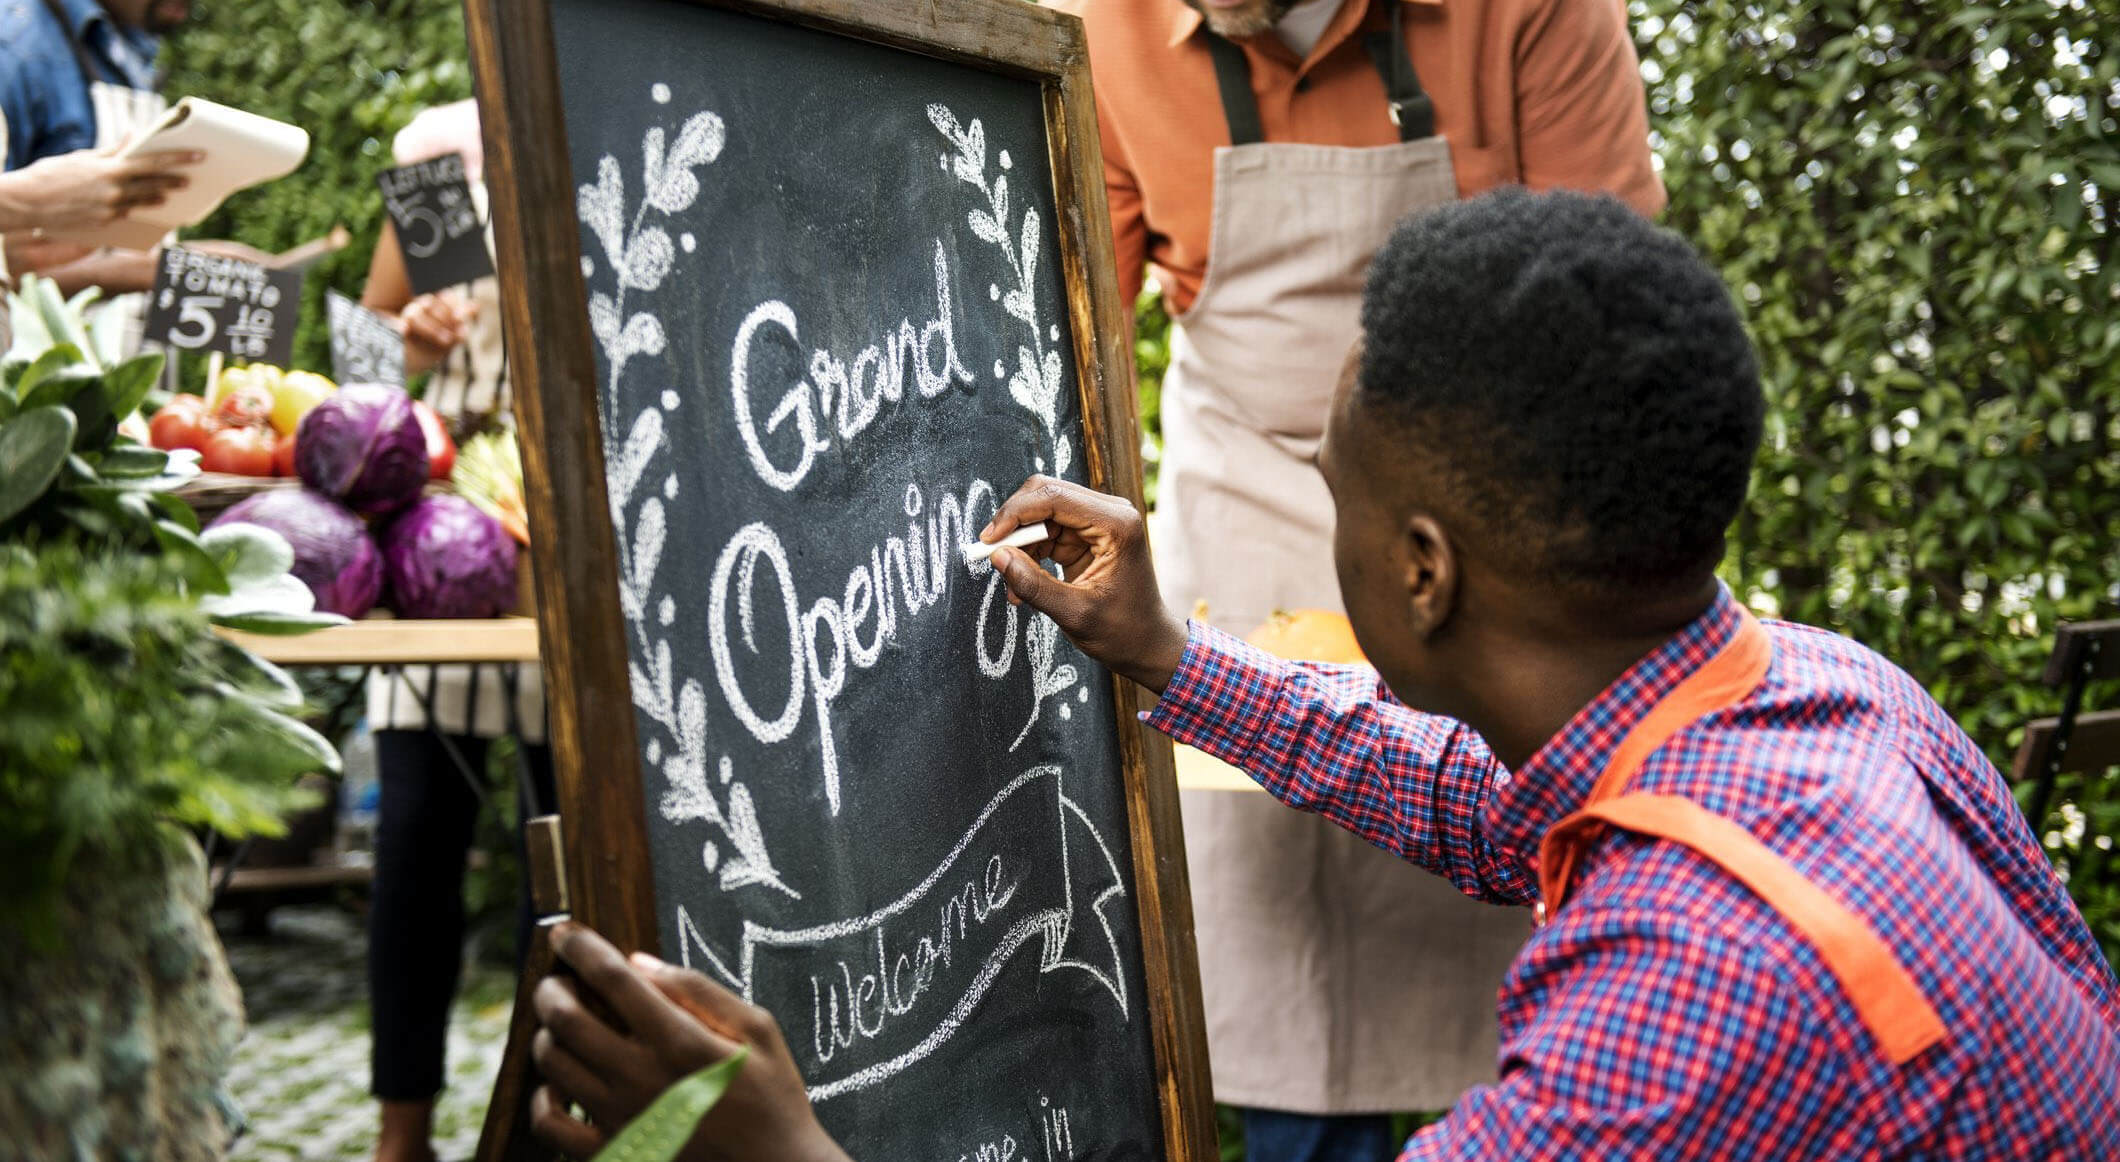 food truck owner designing a grand opening sign on a chalkboard